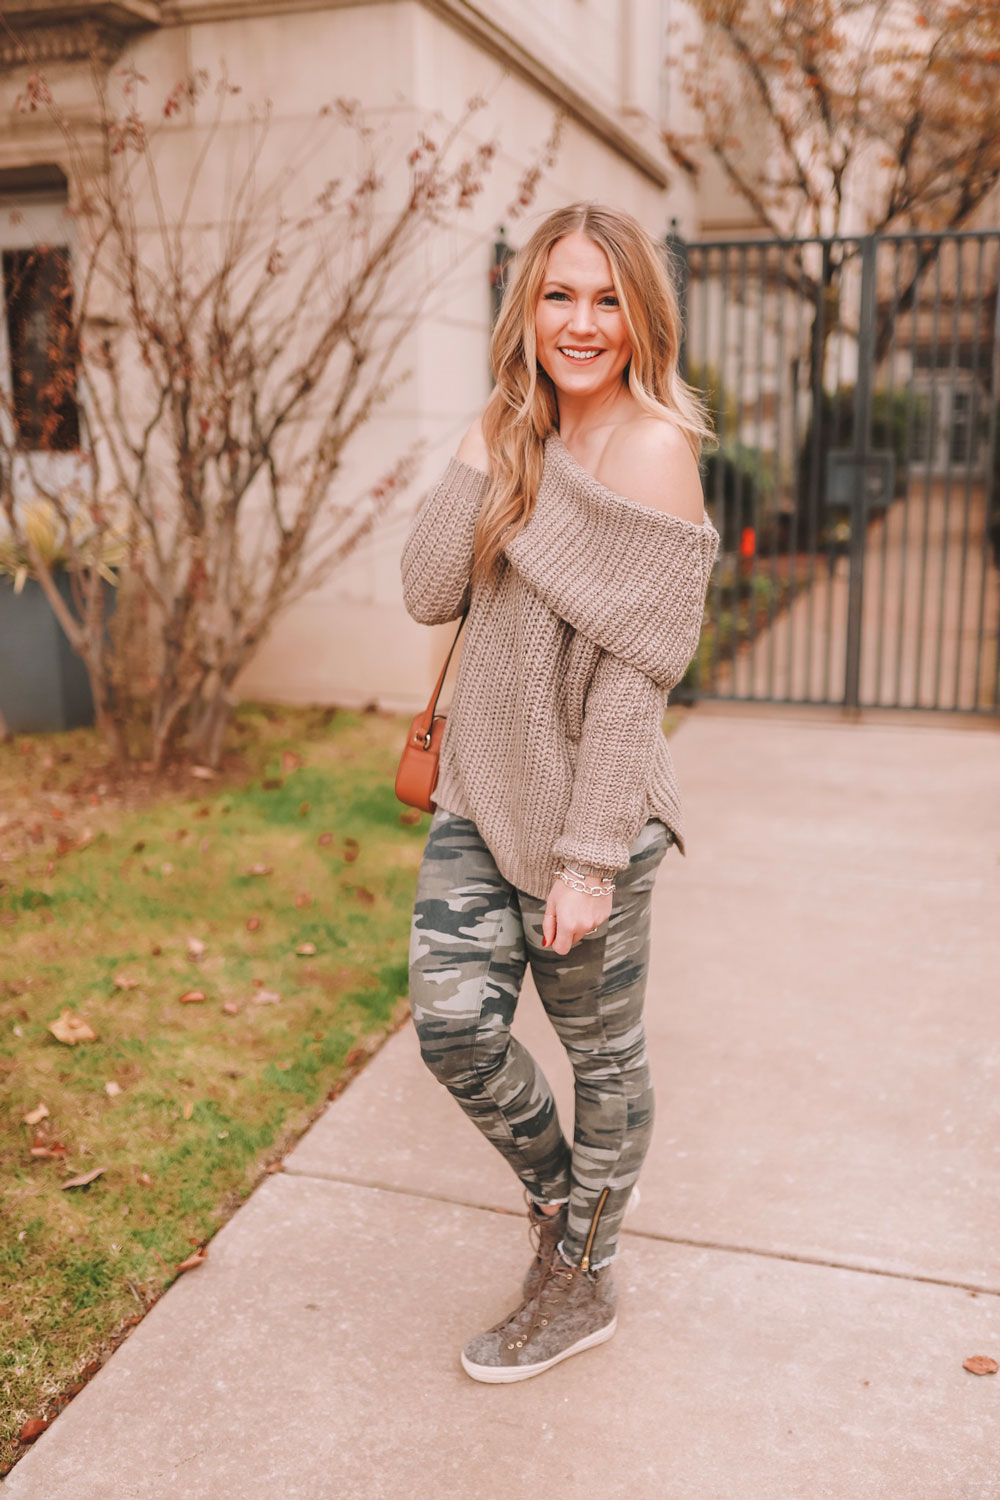 OKC blogger Amanda Martin shares her Black Friday sale picks